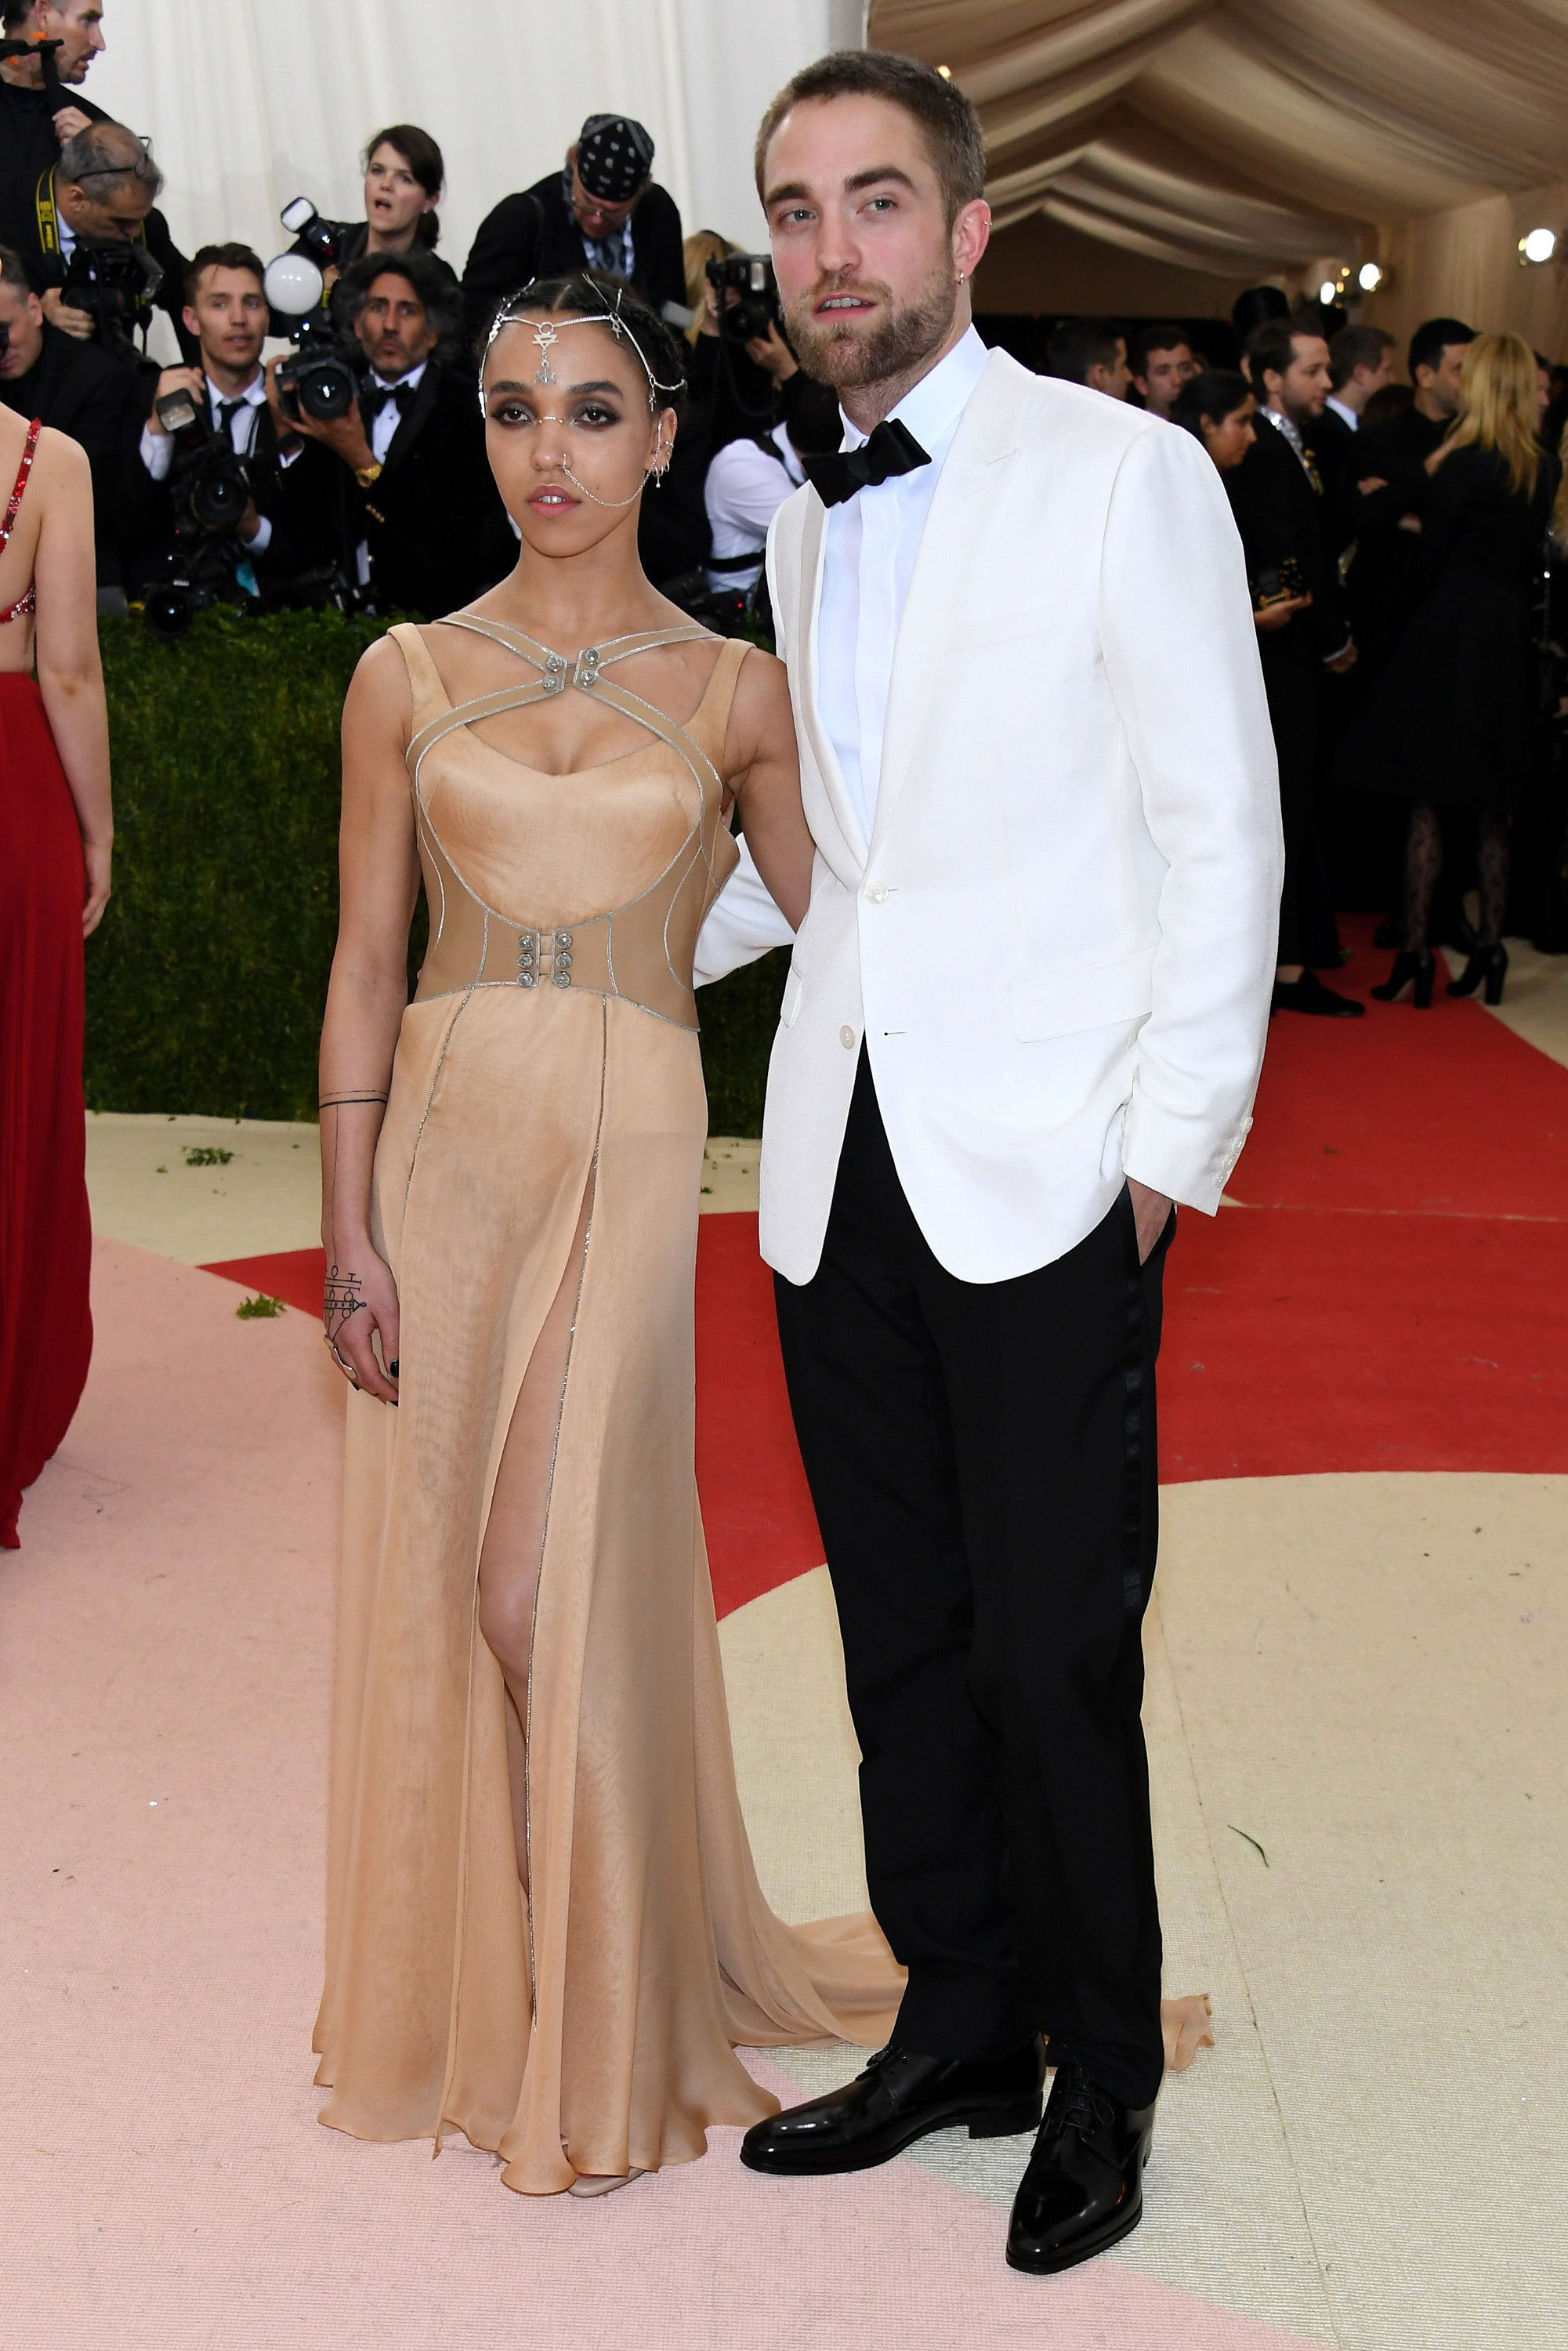 fka twigs robert pattinson Met Gala 2016